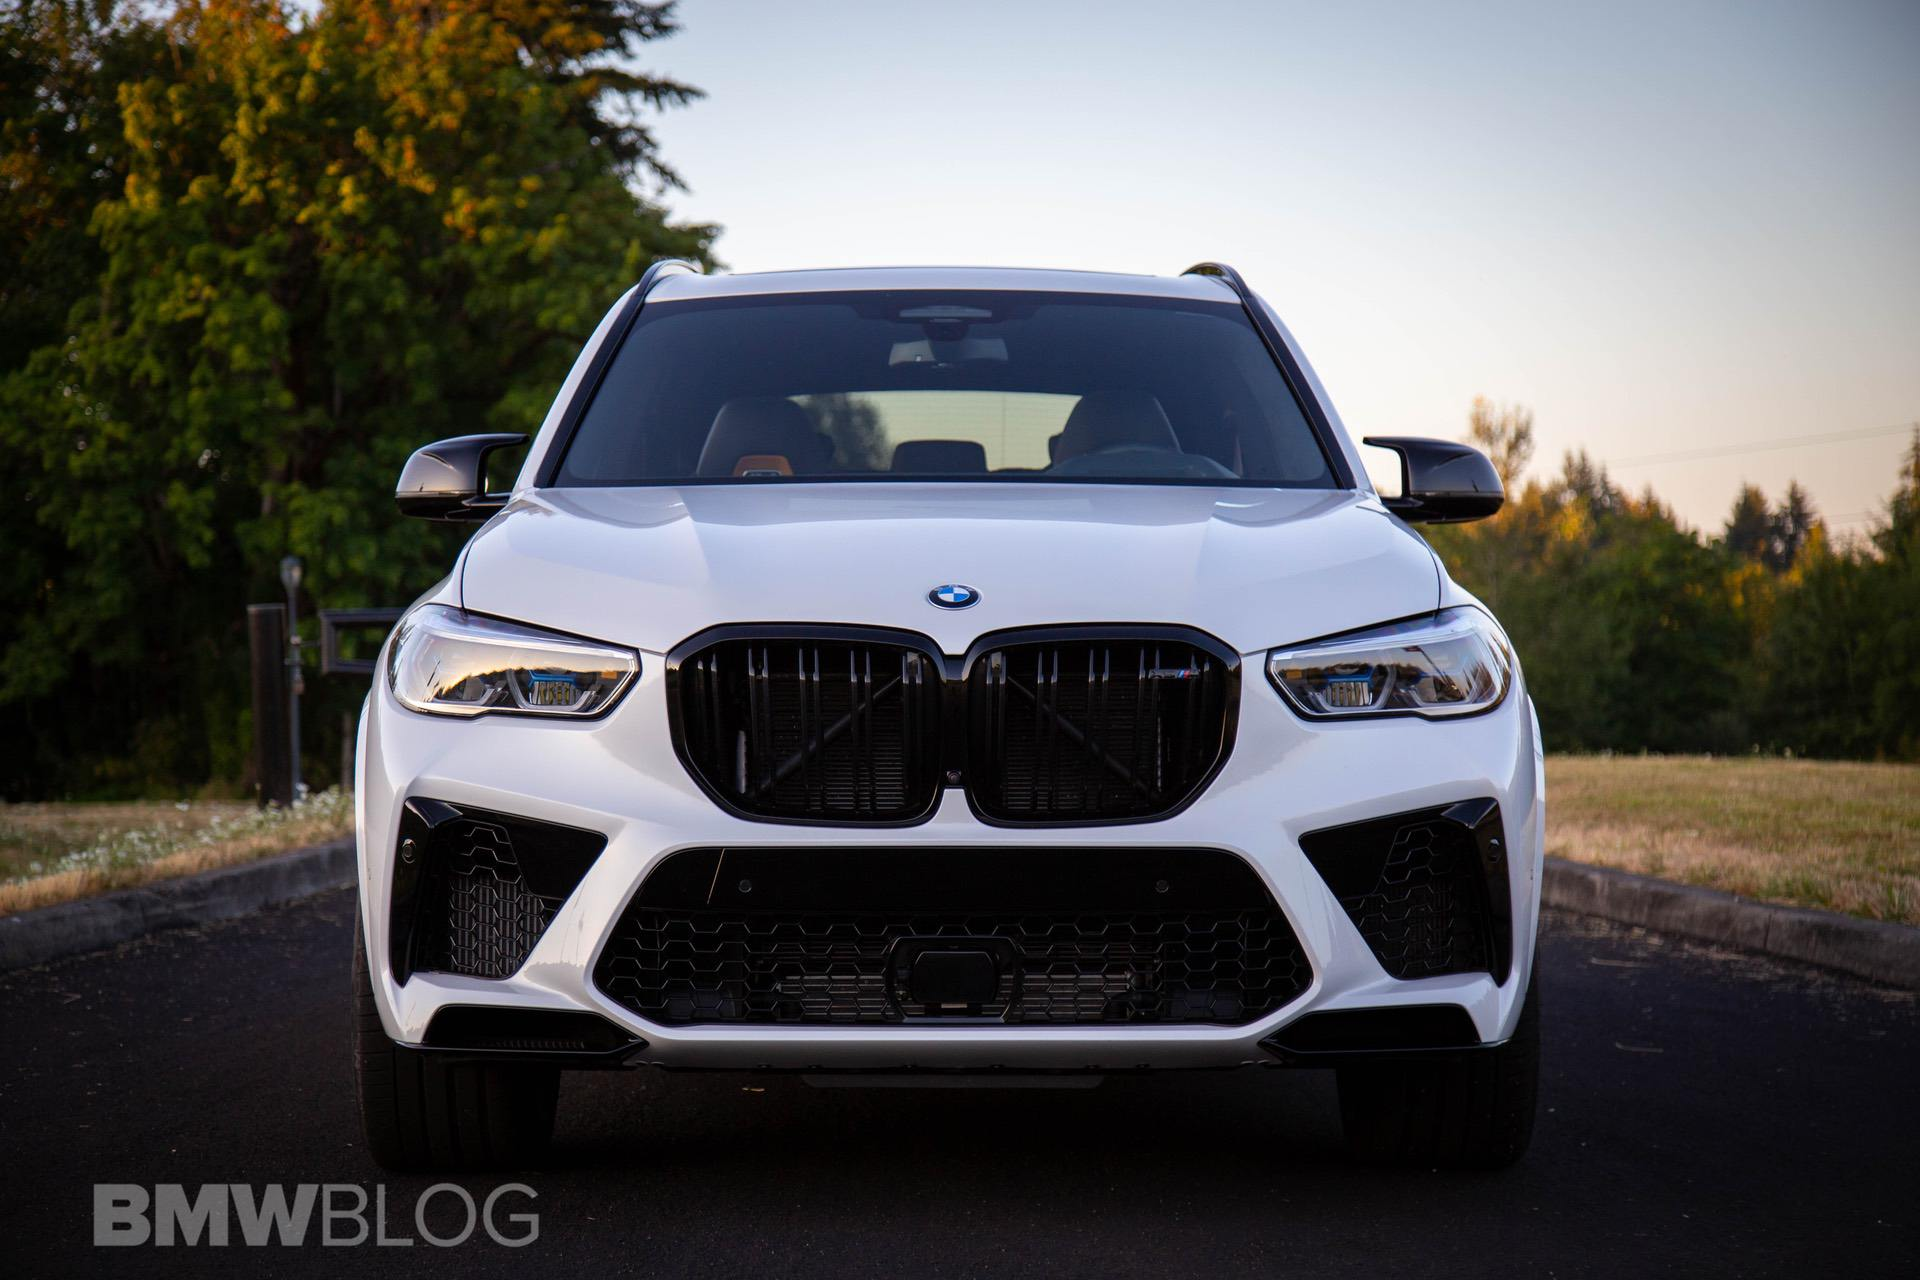 BMW M reports sales records in 2020 with nearly 145,000 vehicles delivered